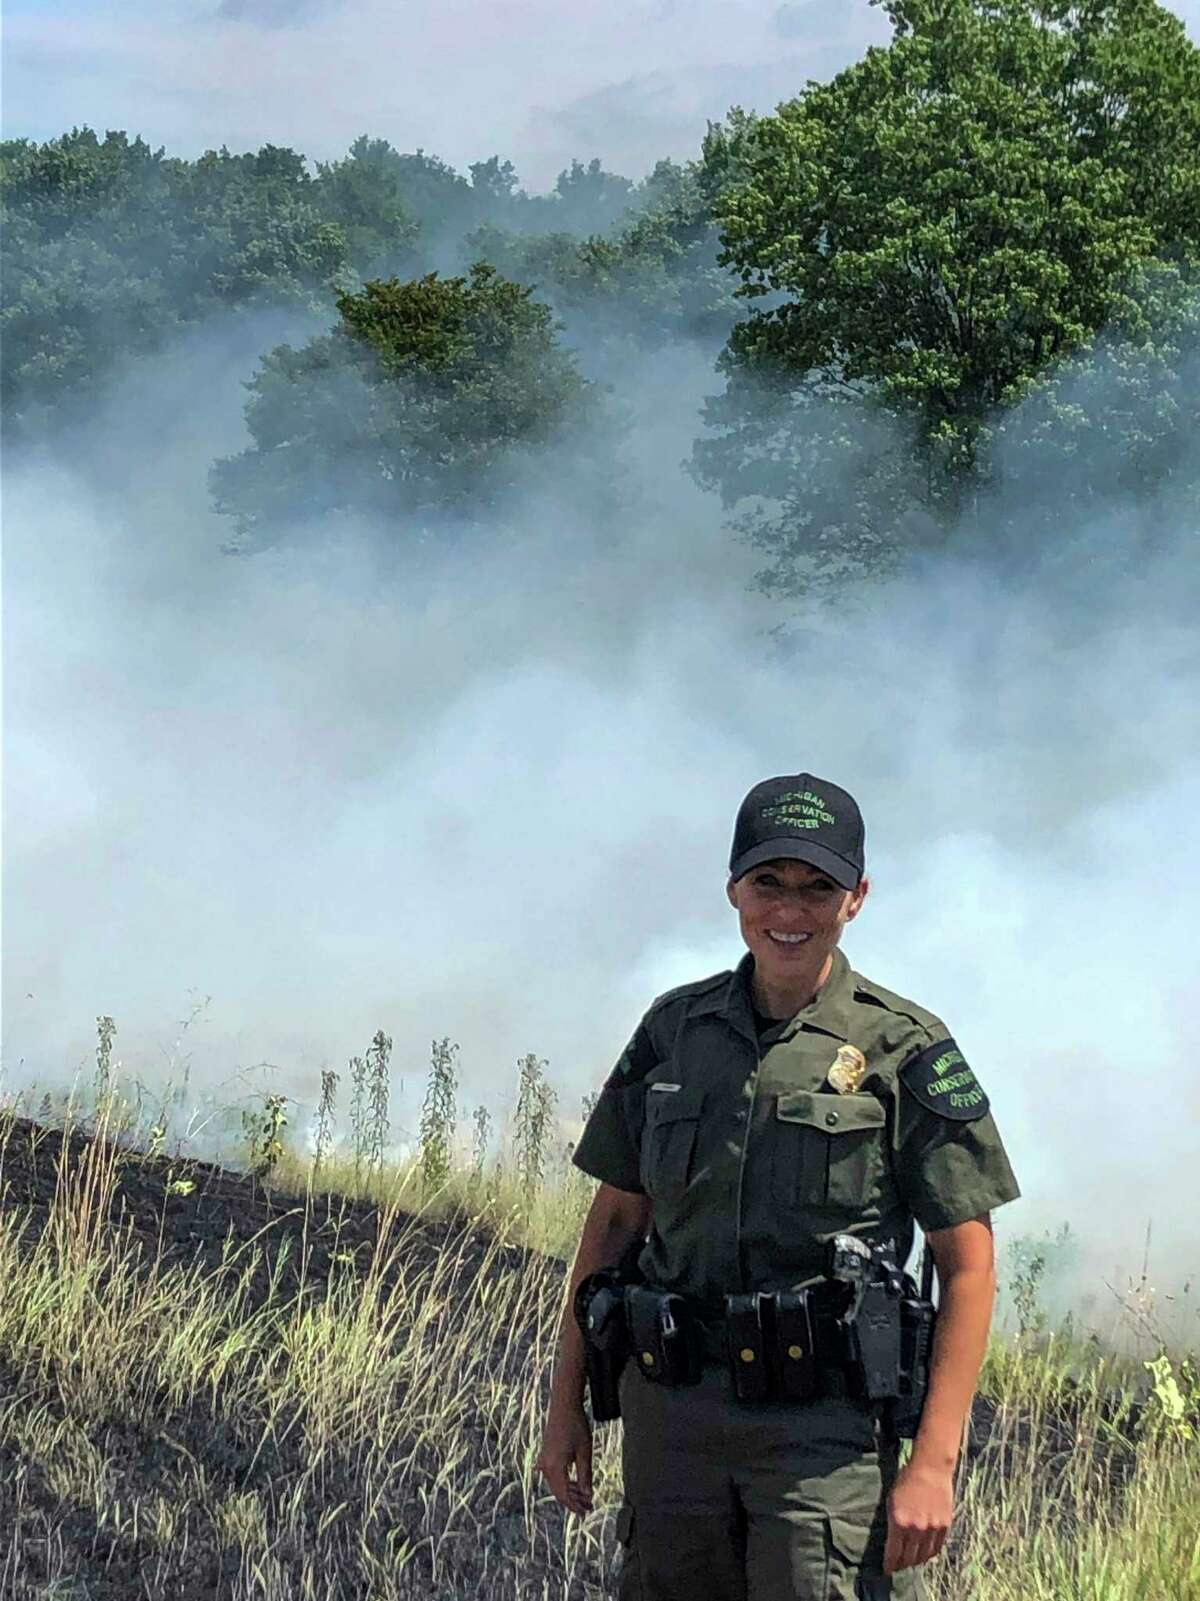 Michigan Conservation Officer Angela Greenway stands in front of smoke from an extinguished wildfire along US-131 that she responded to in 2019. (Courtesy photo/Michigan Department of Natural Resources)